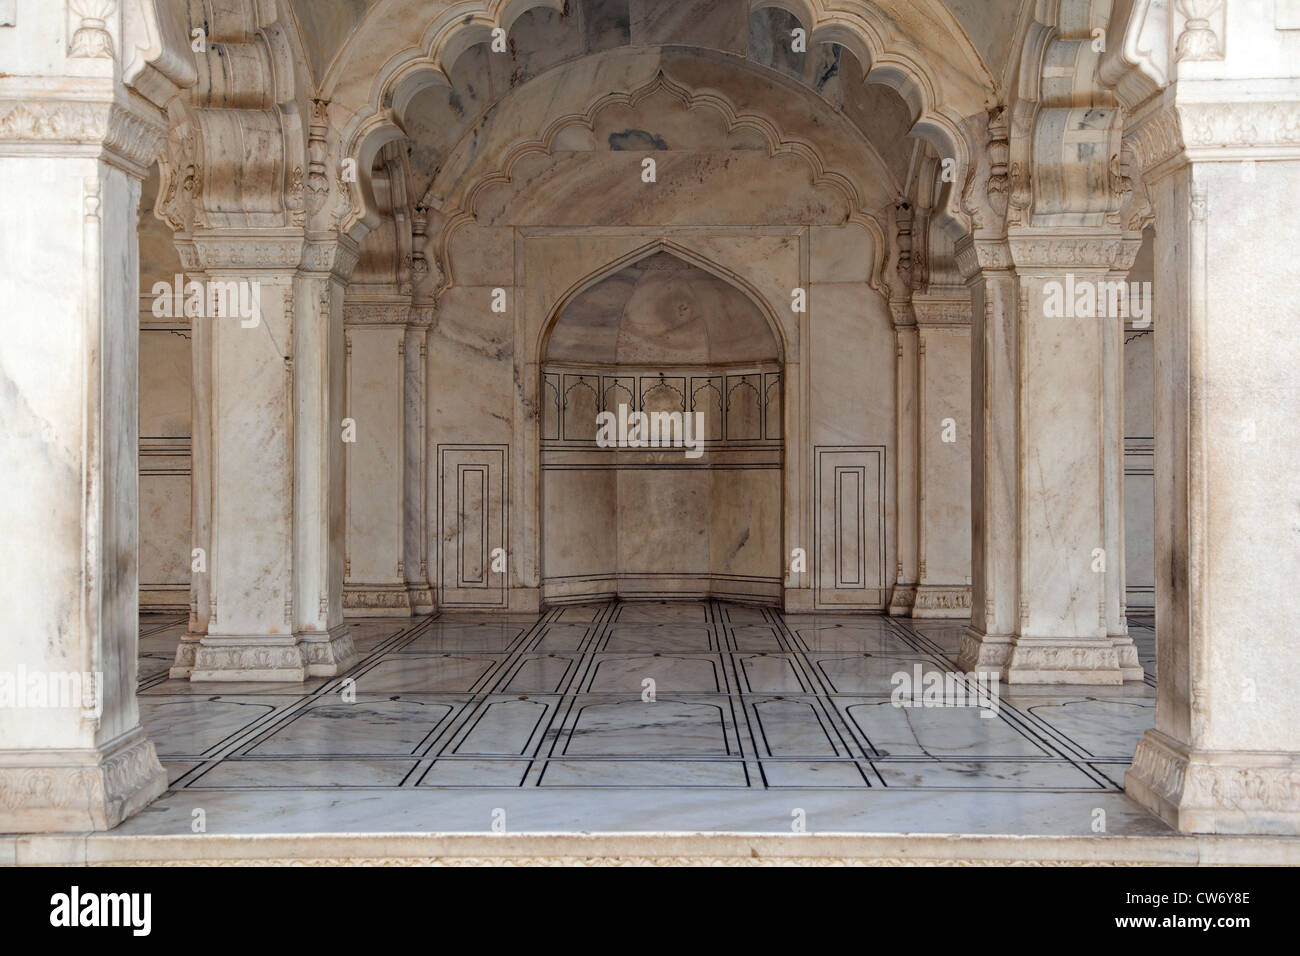 Interior in marble of the Agra Fort / Red Fort in Agra, Uttar Pradesh, India - Stock Image